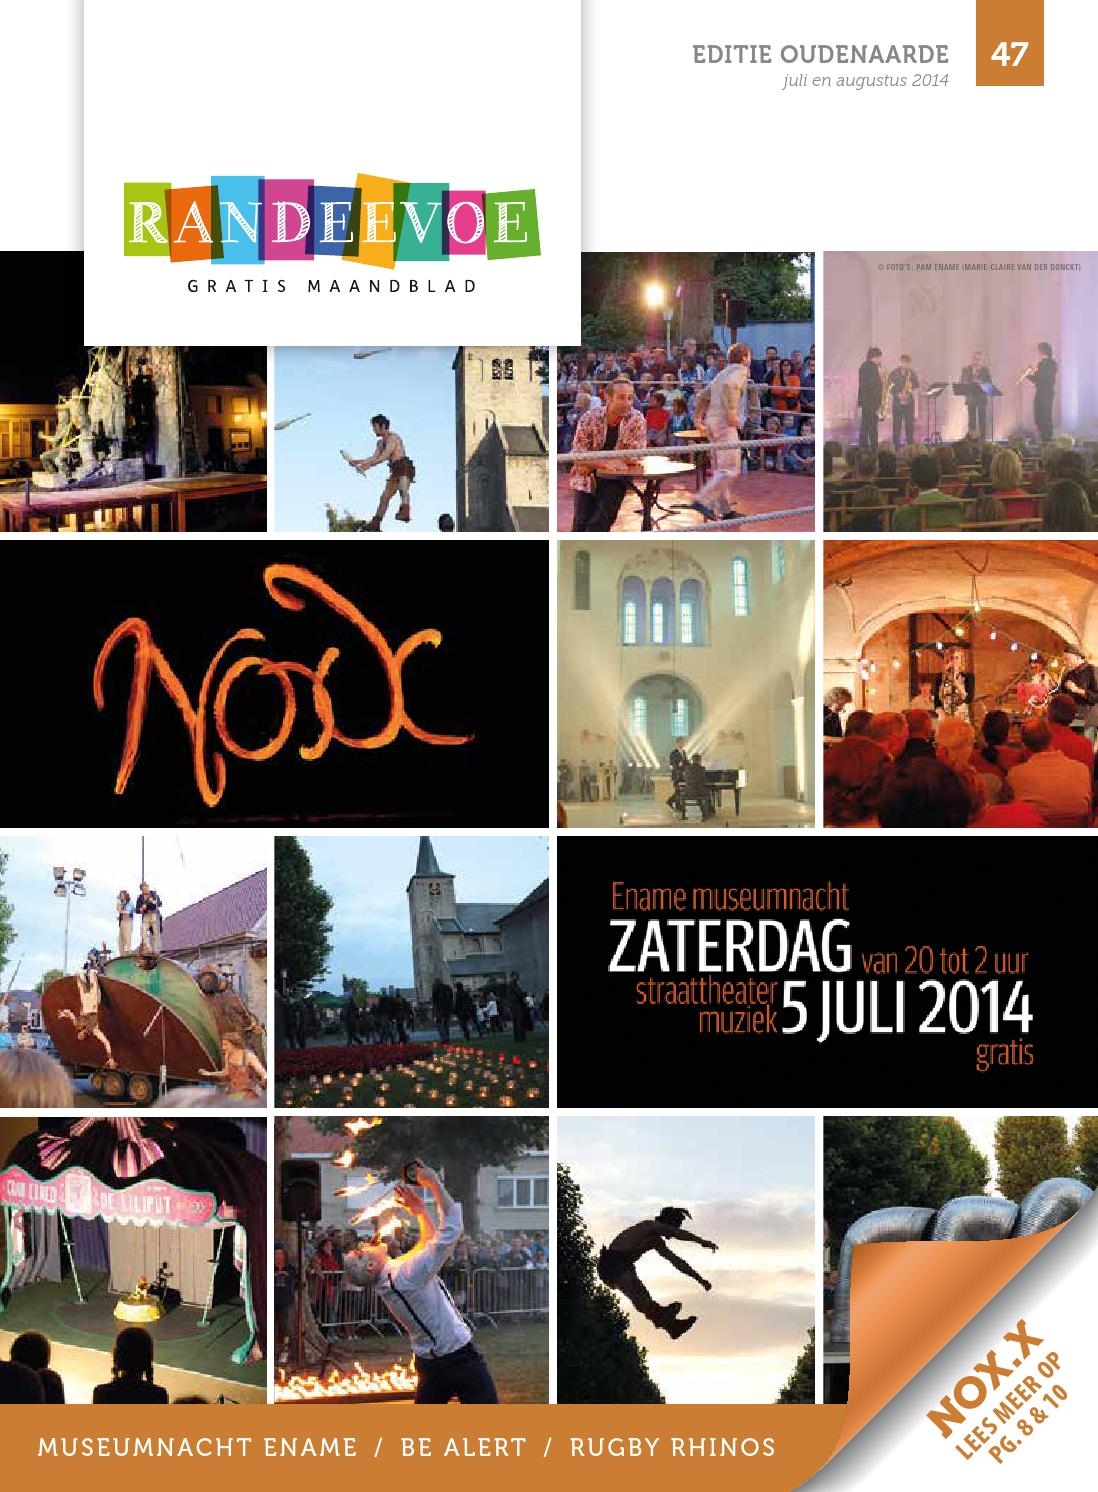 Randeevoe oudenaarde 47 by design & publishing   issuu